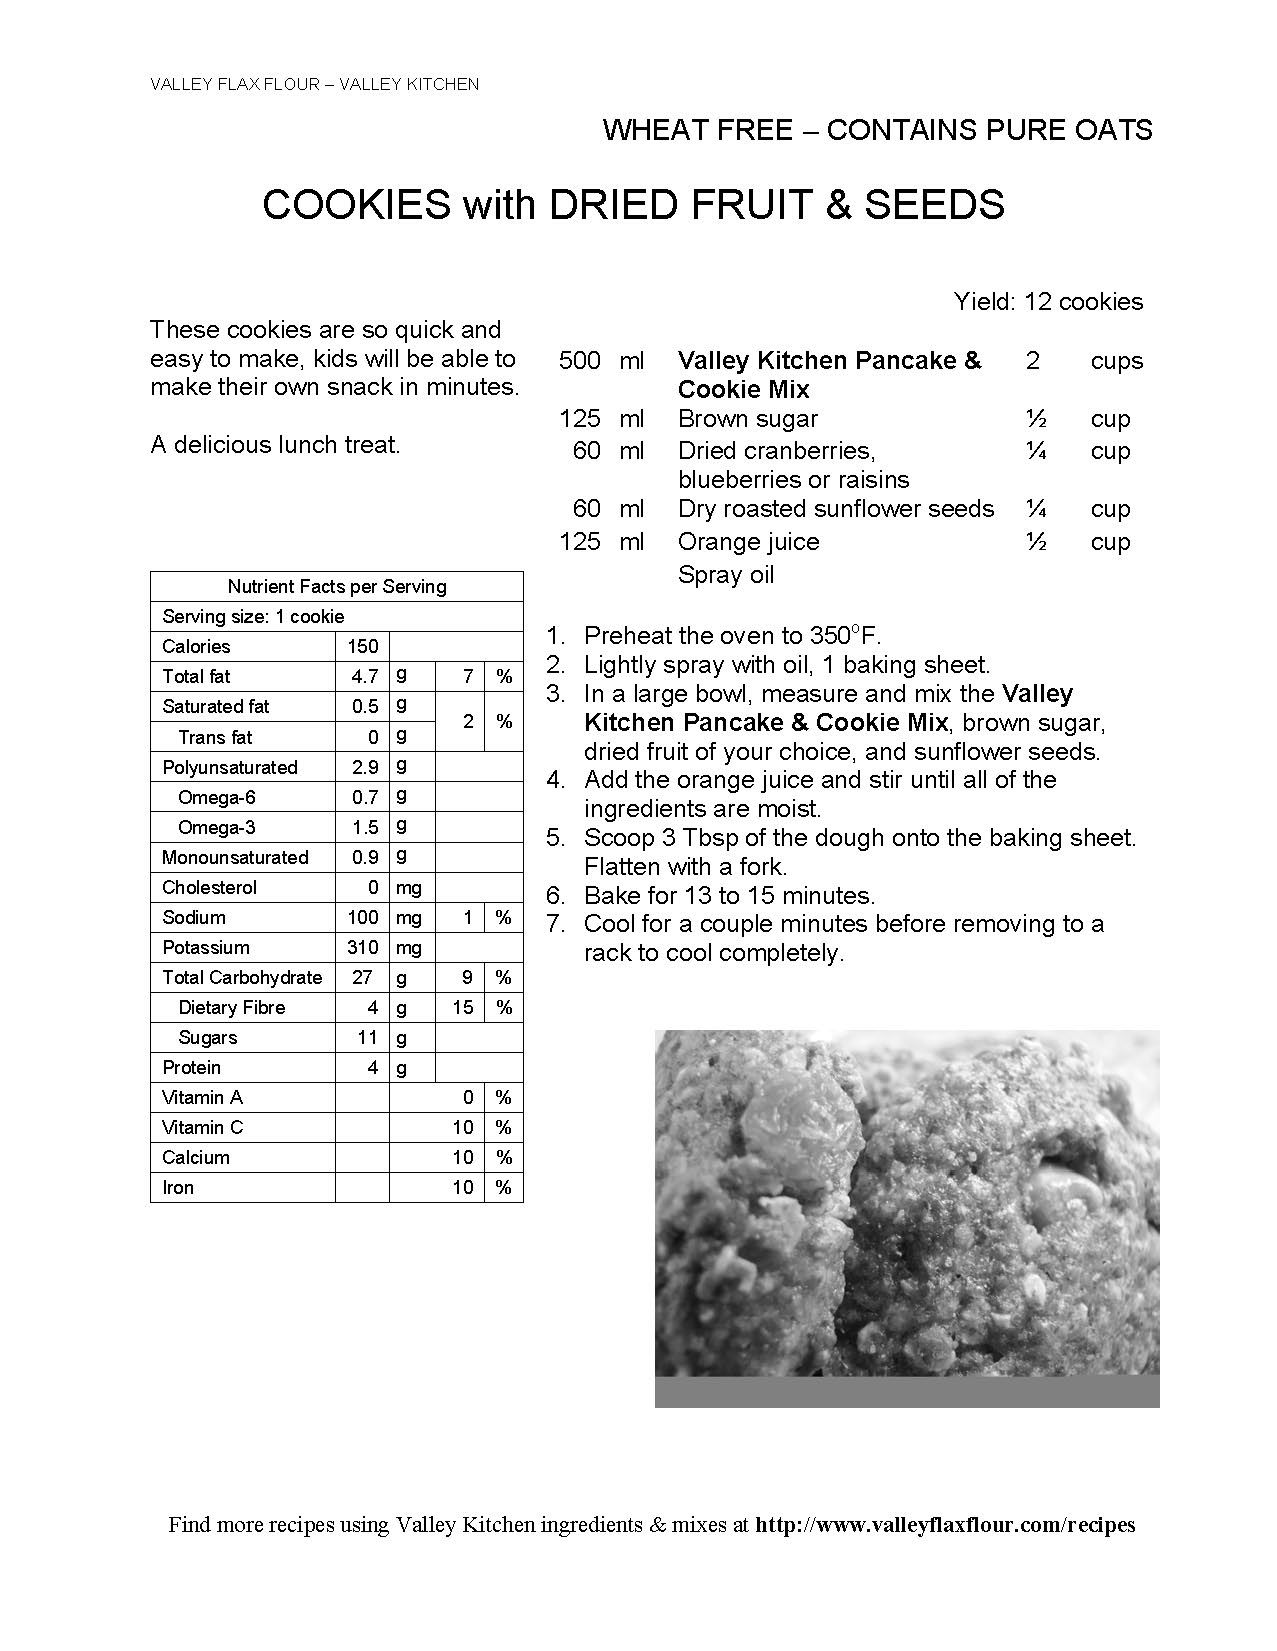 These simple cookies use our pancake & cookie mix, Add in your own choice dried fruit, seeds or nuts. Also great with chocolate chips.